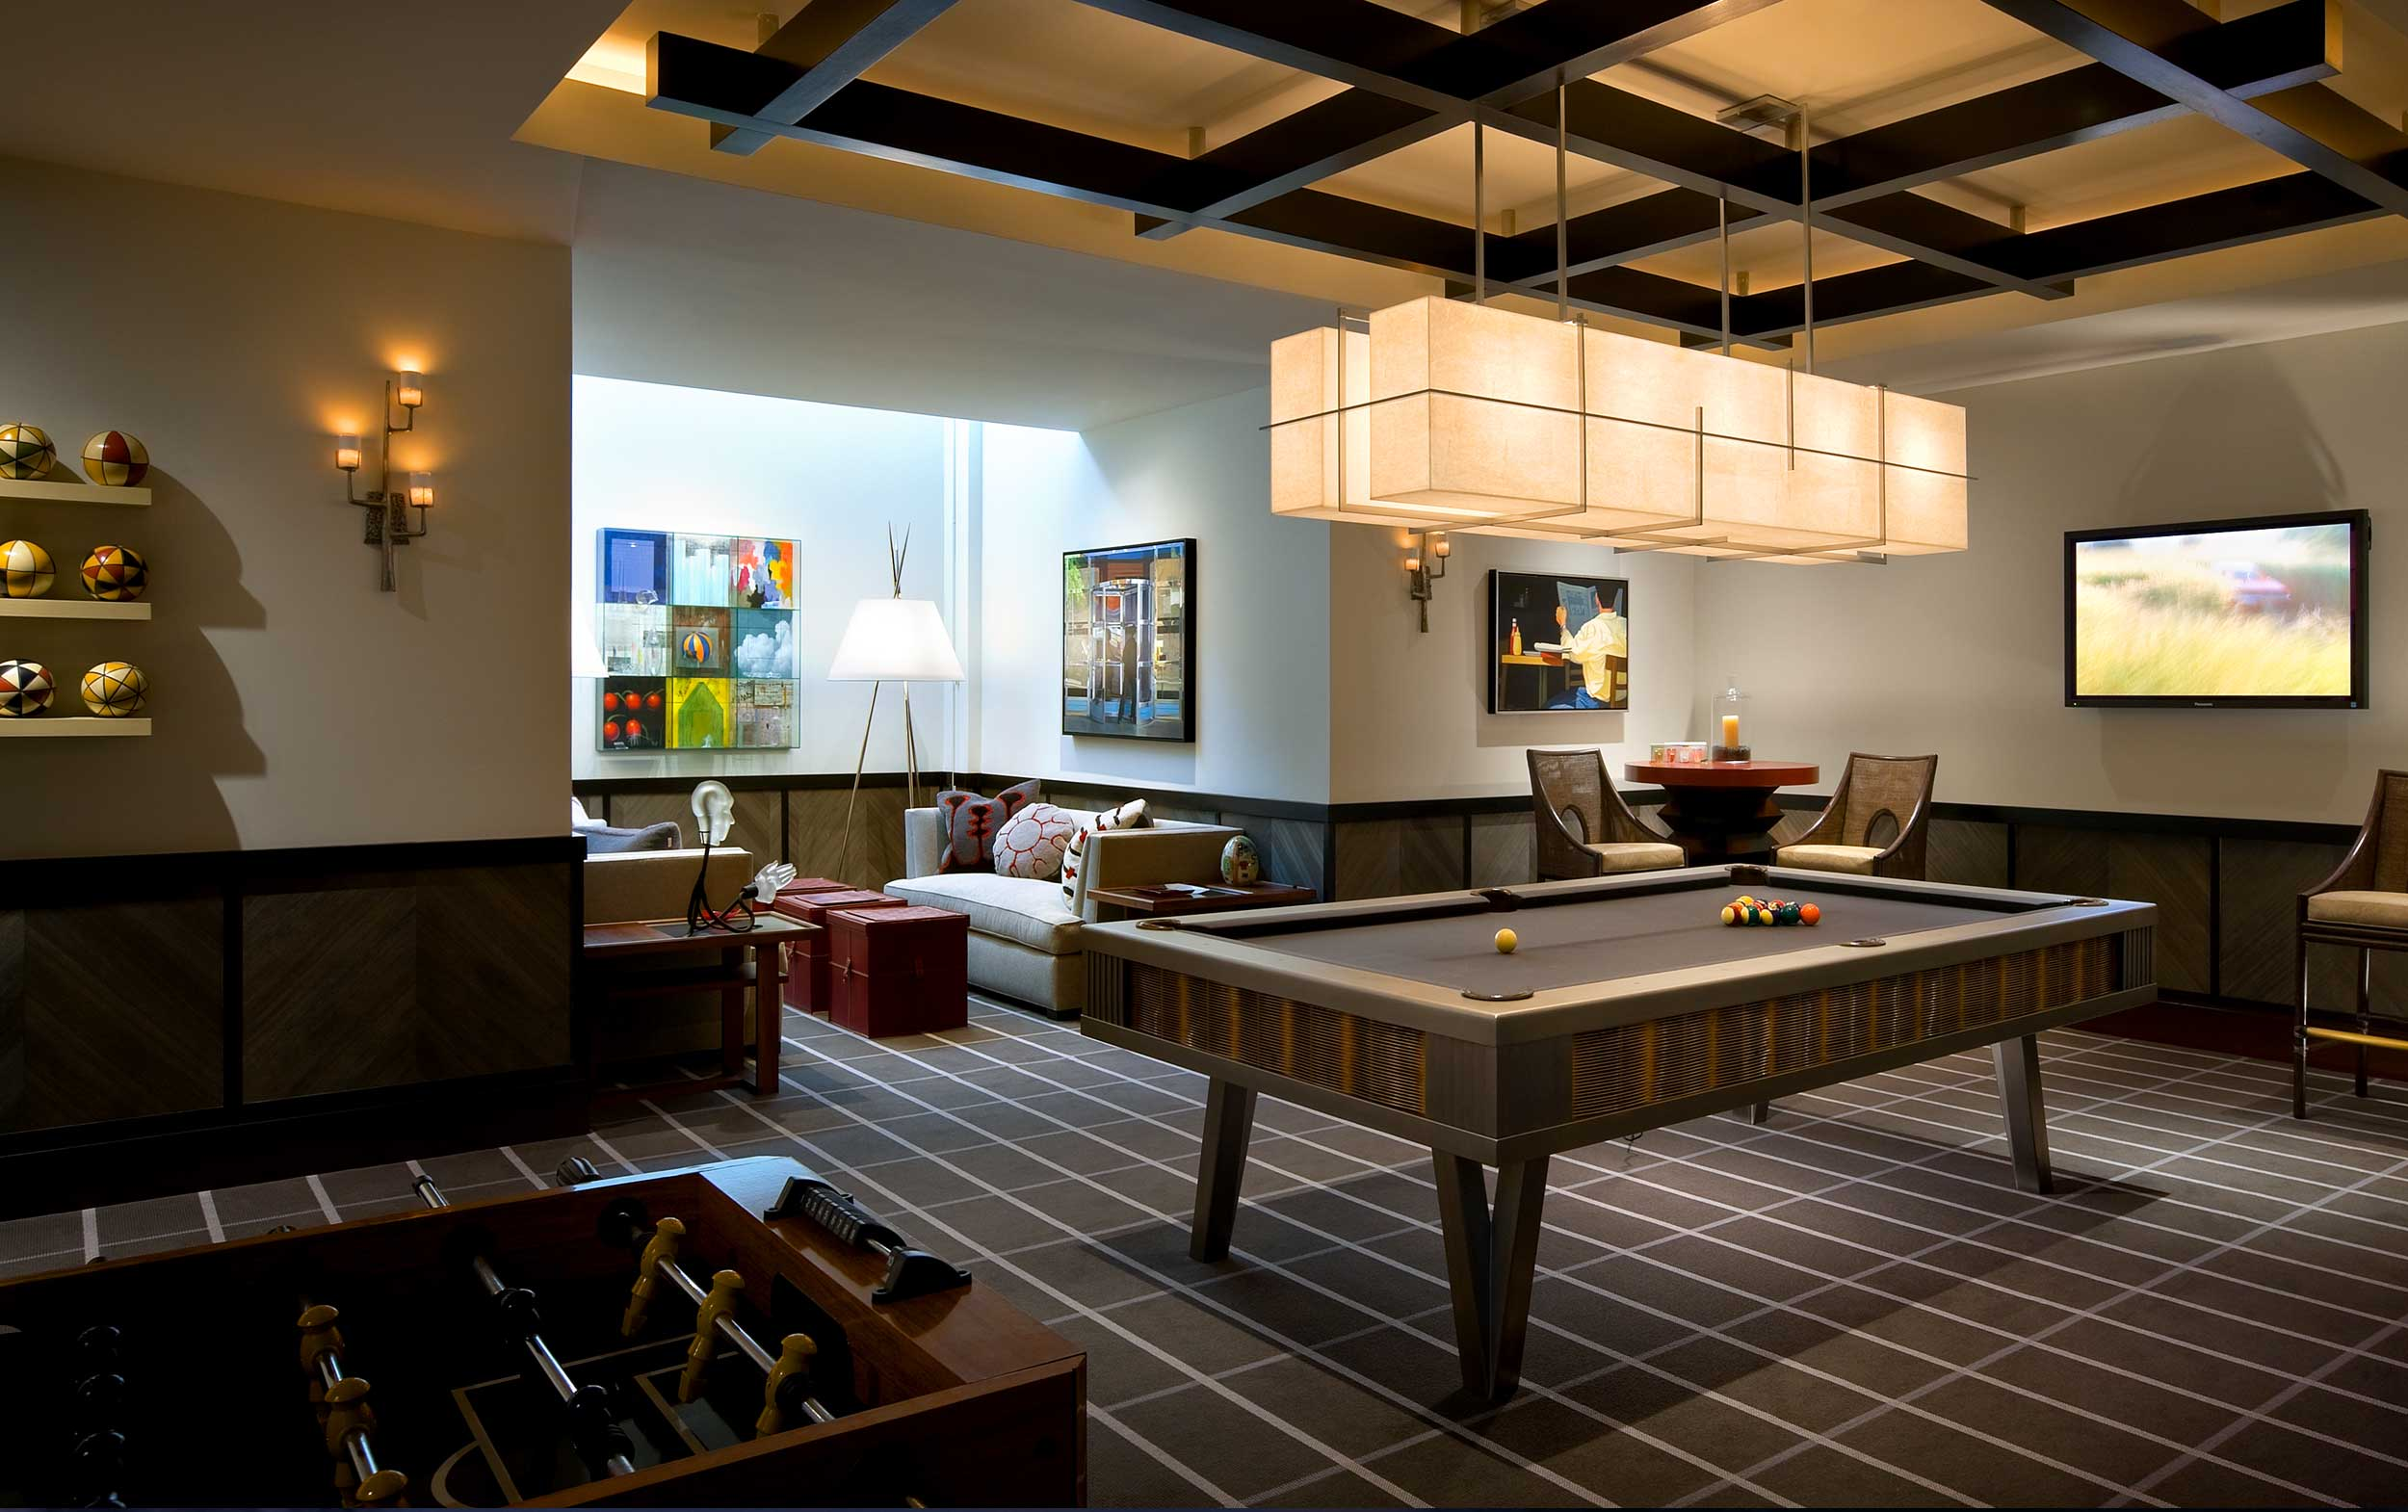 Games room with billards table